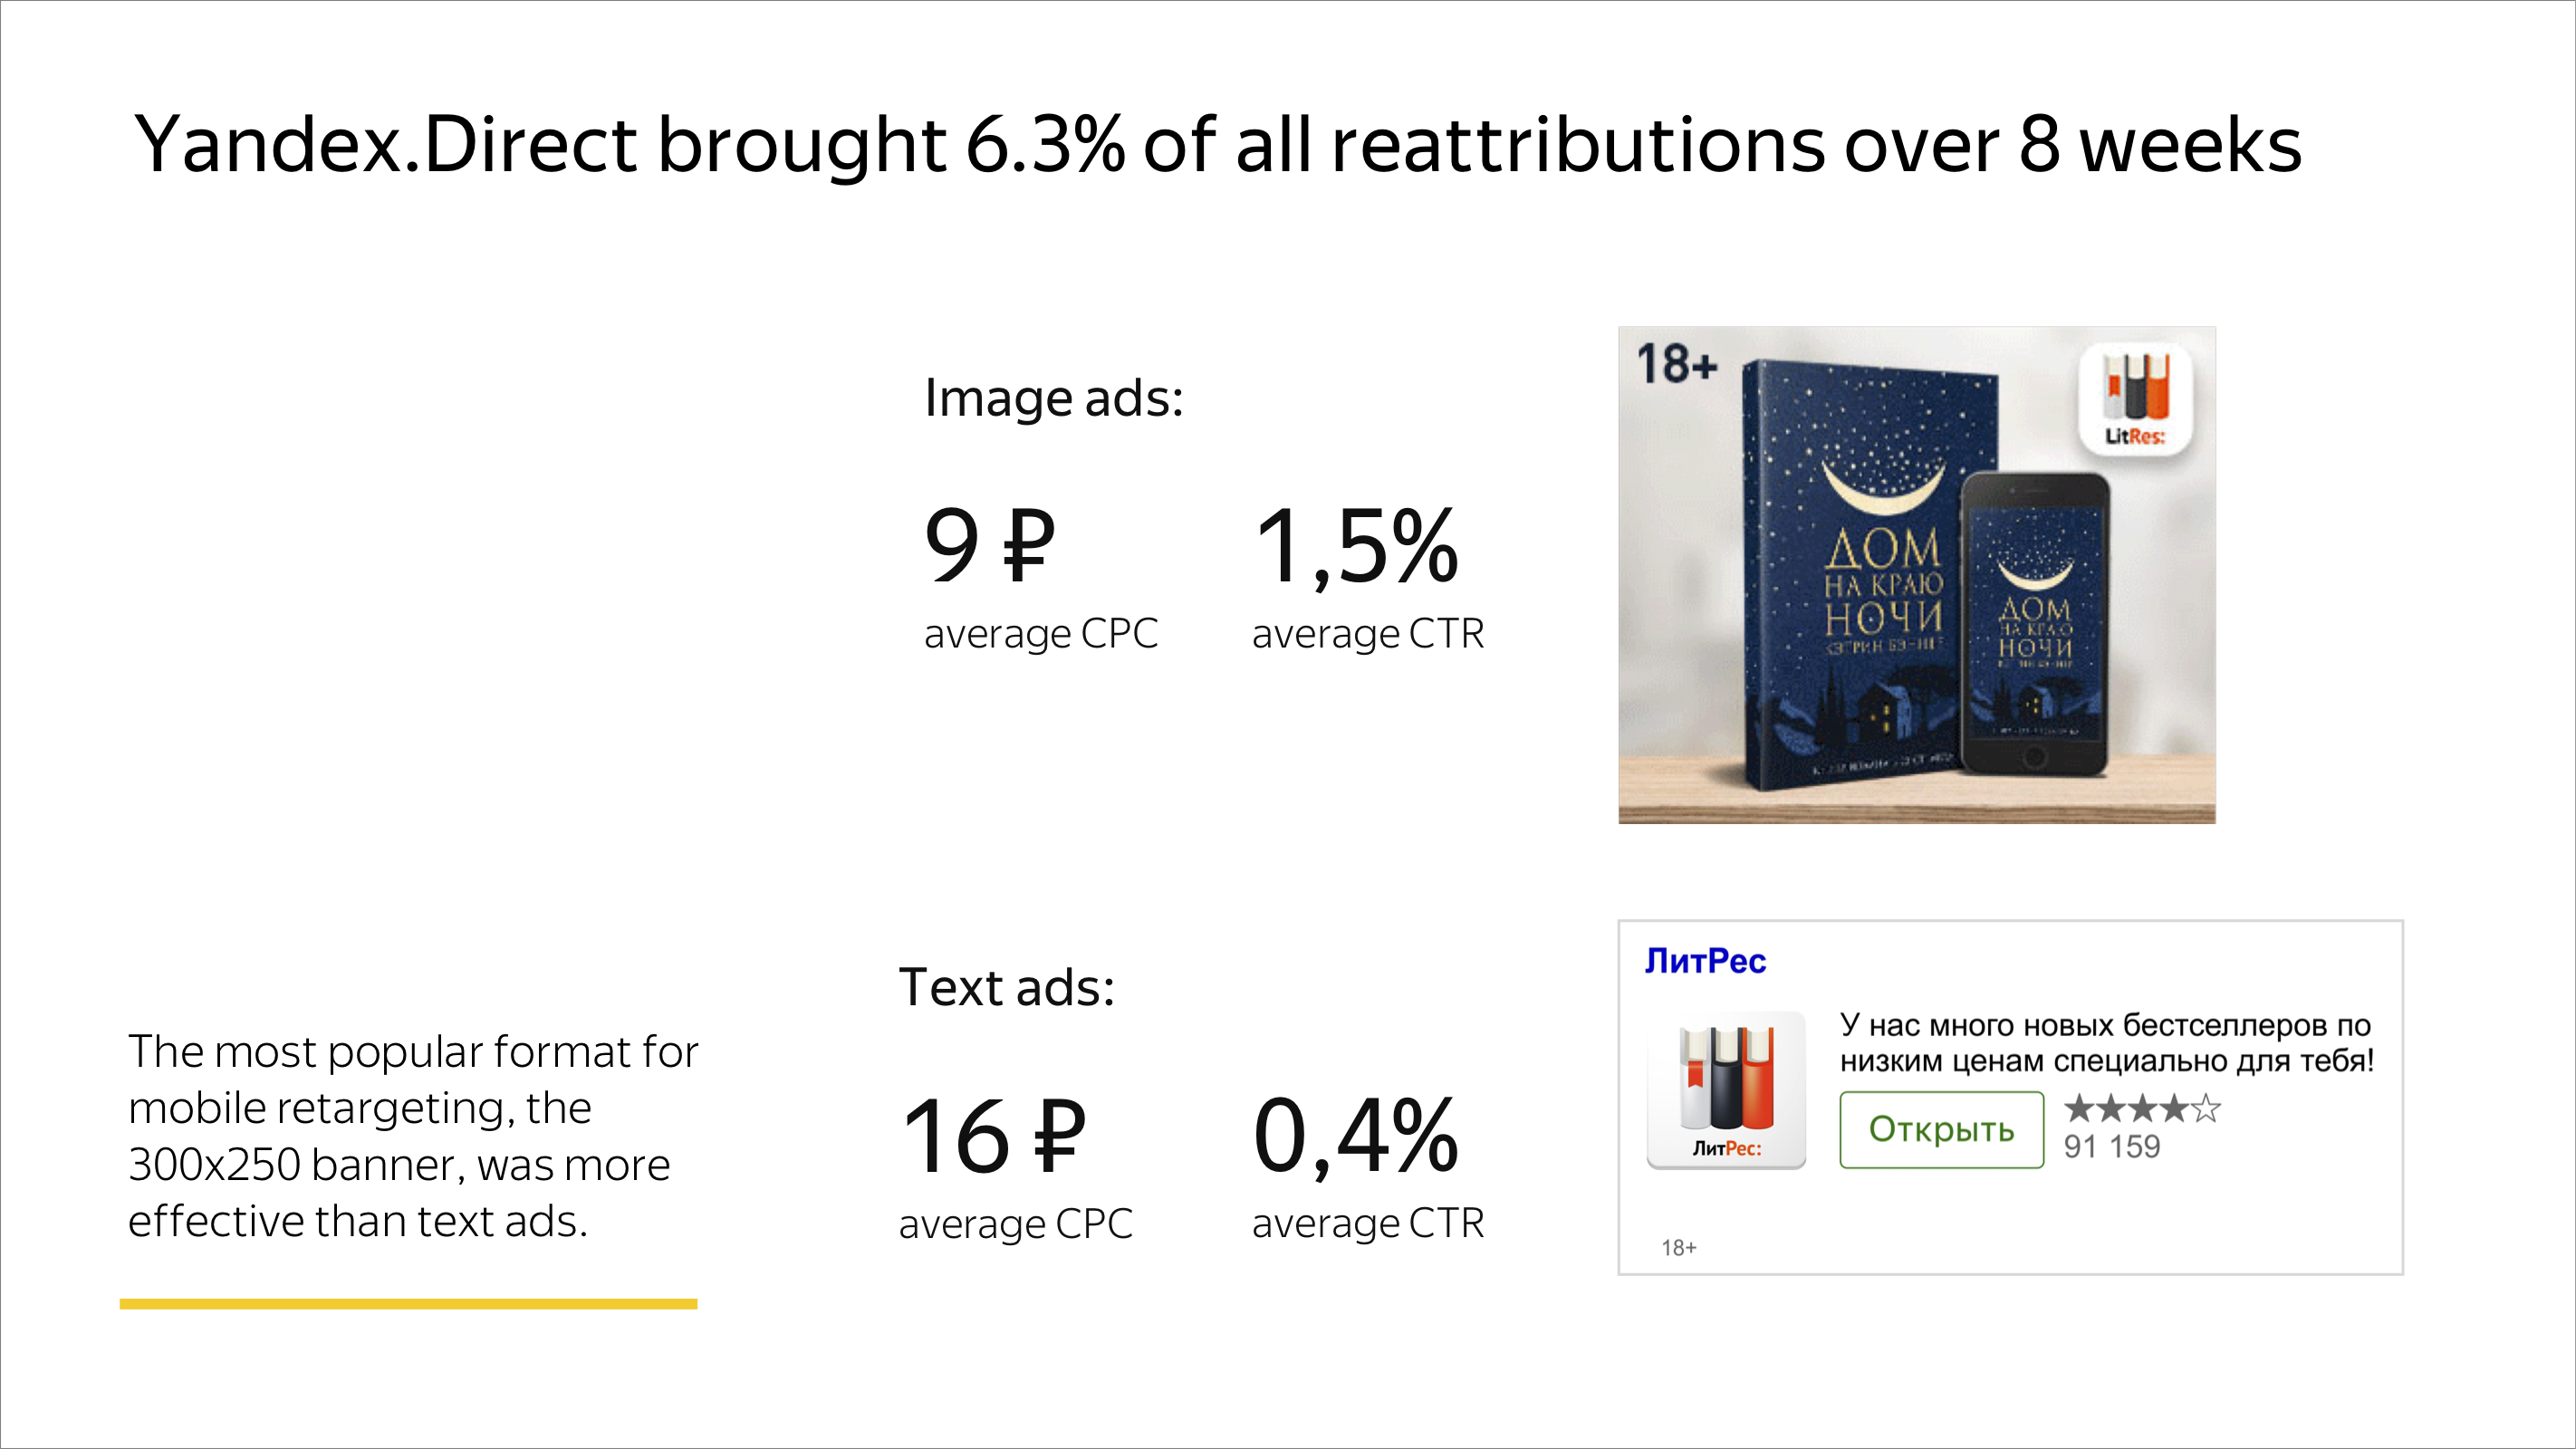 Yandex.Direct brought 6.3% of all reattributions over 8 weeks